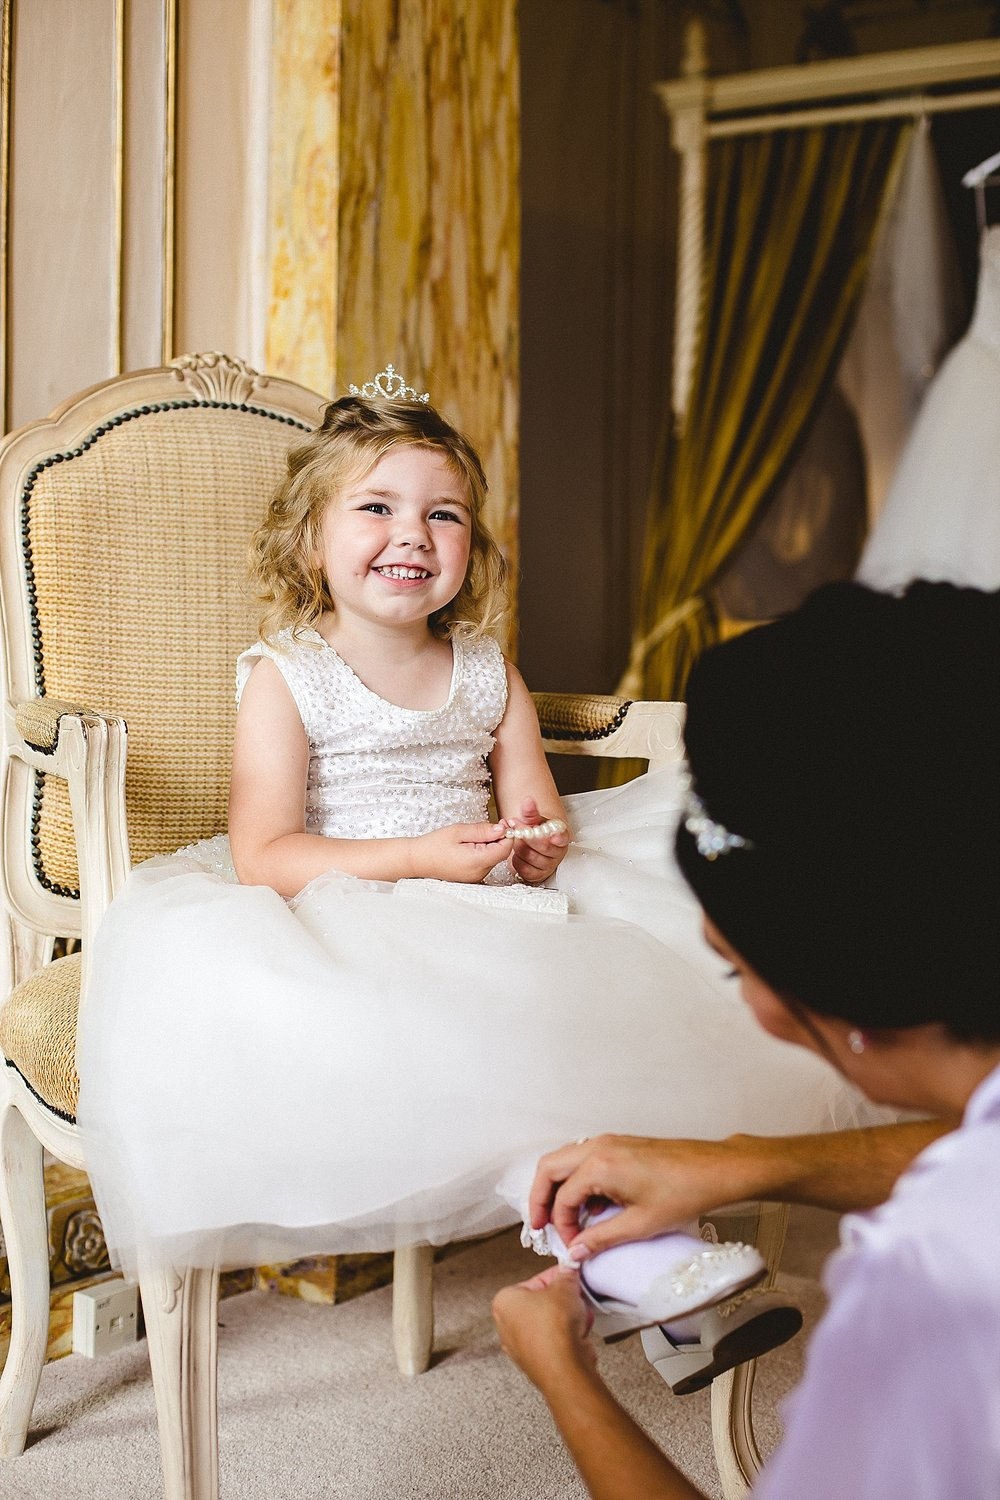 Gosfield Hall Wedding - Flower girl getting ready in Bridal Suite